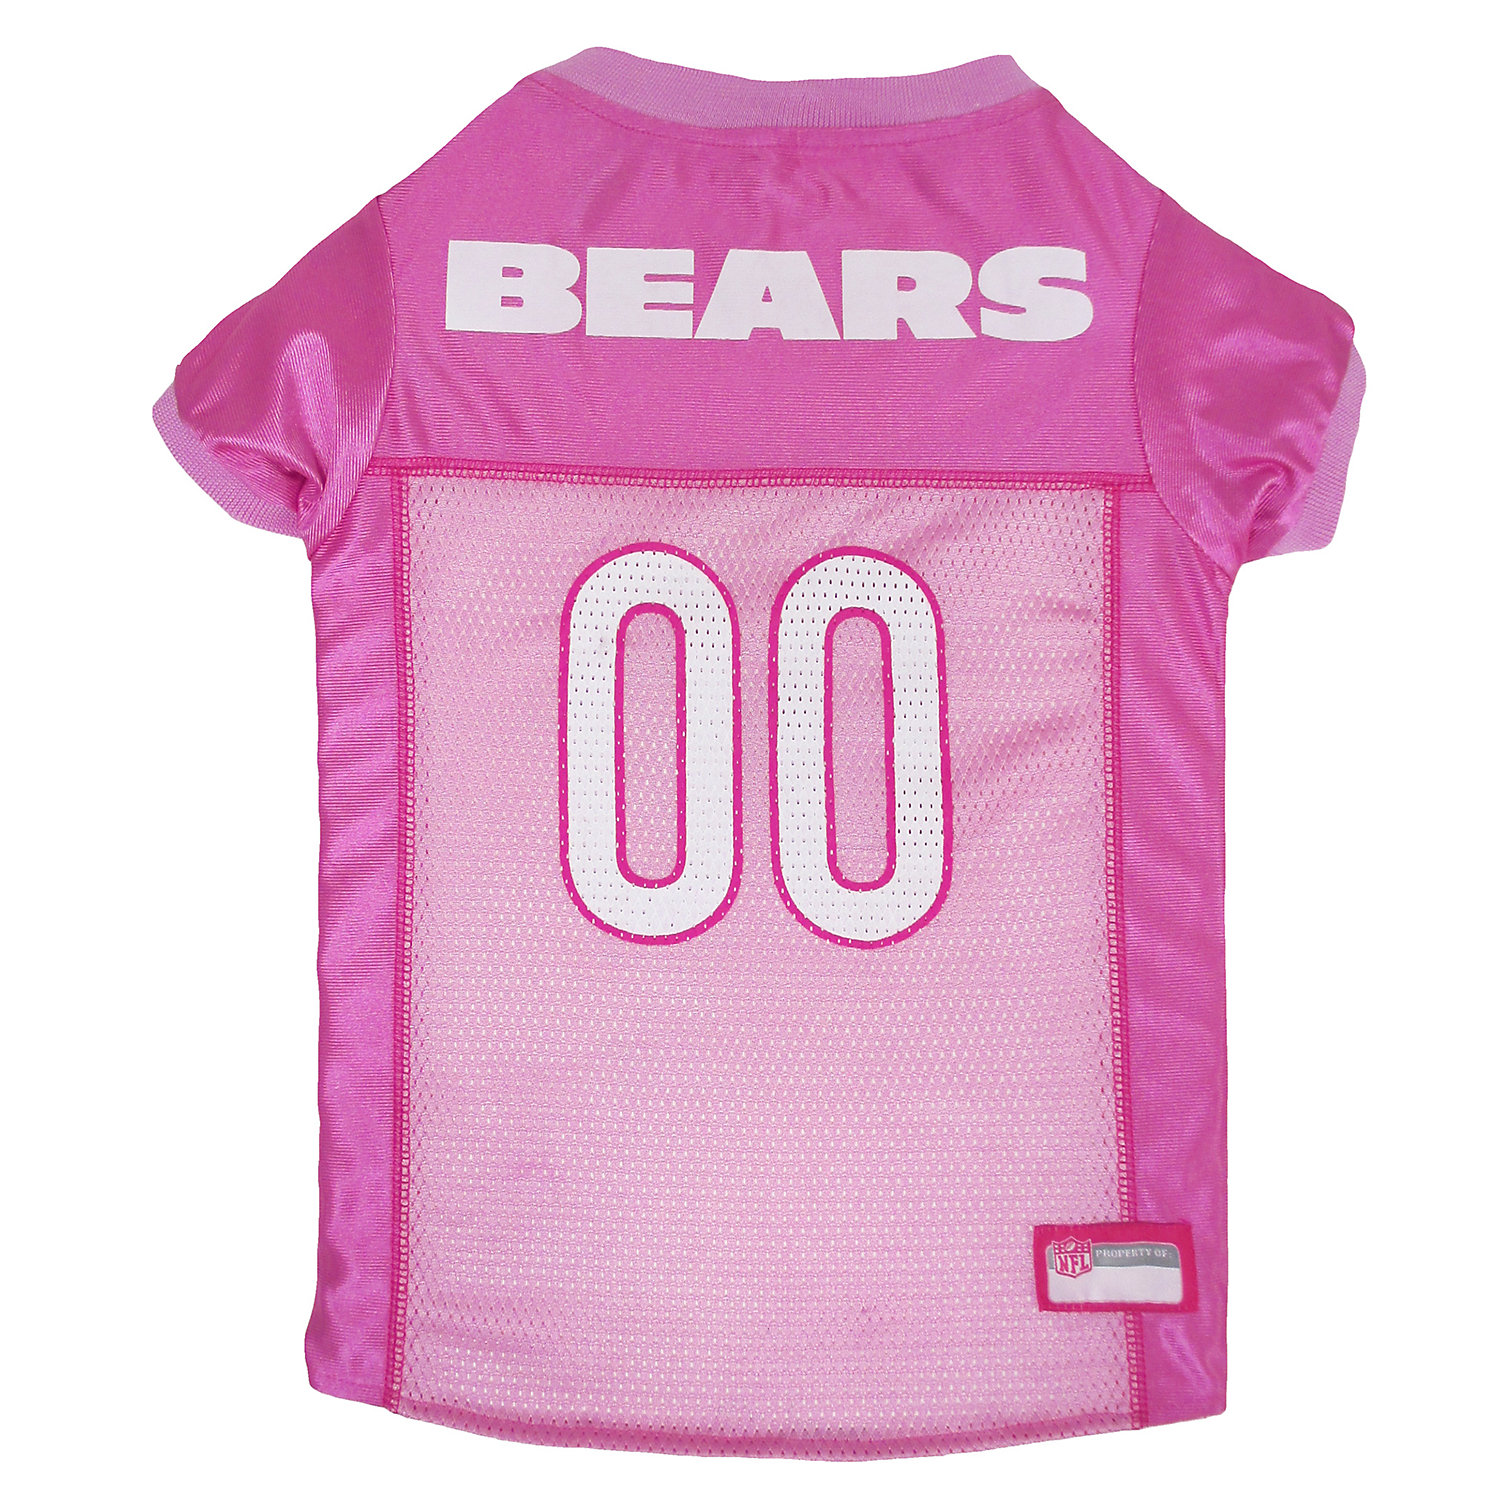 Pets First Chicago Bears Nfl Pink Mesh Jersey, Large